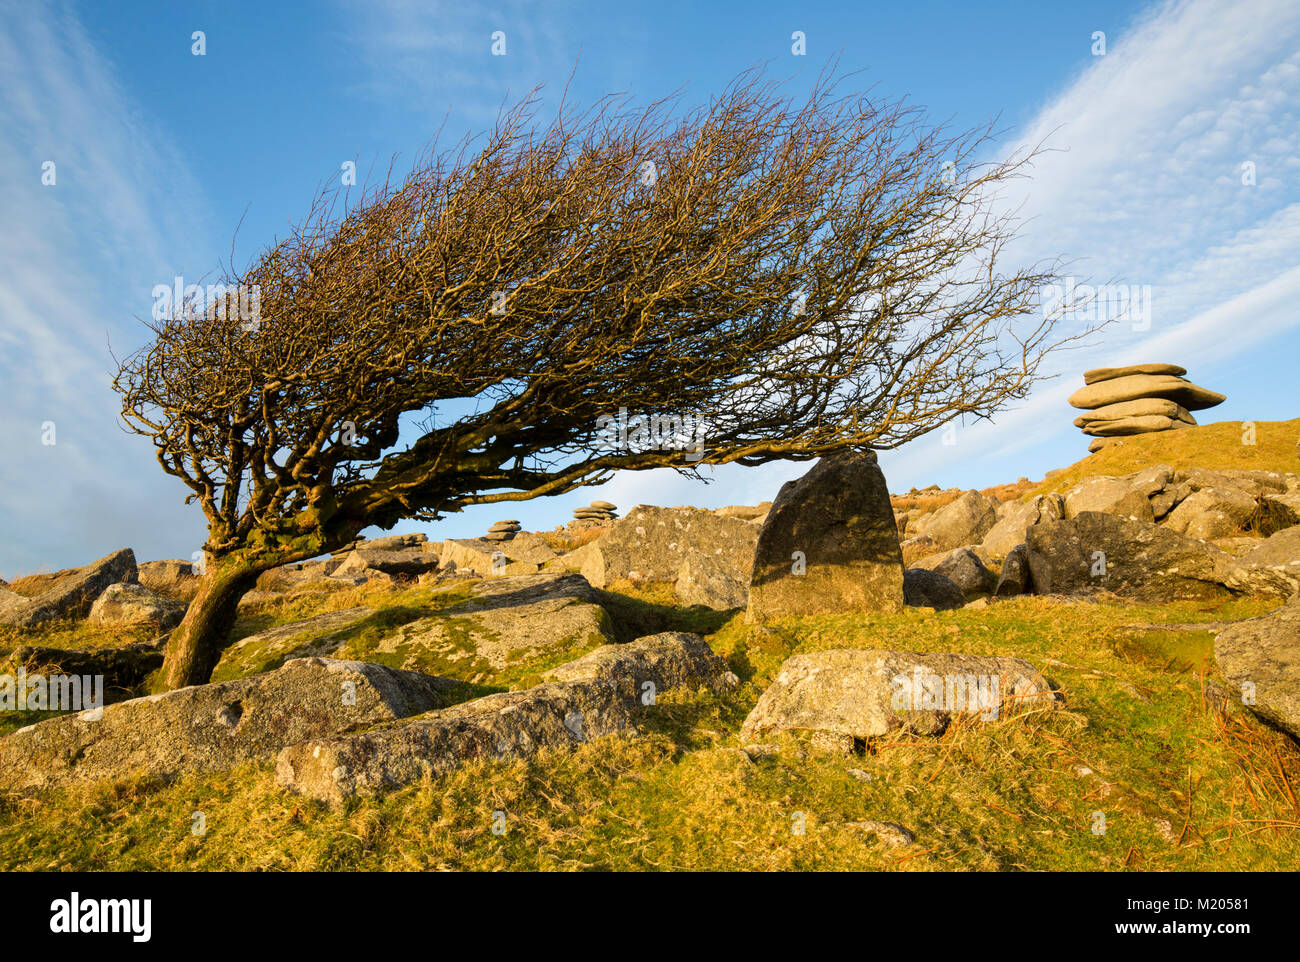 Iconic hawthorn tree of the slopes of Stowes Hill on Bodmin Moor Cornwall - Stock Image